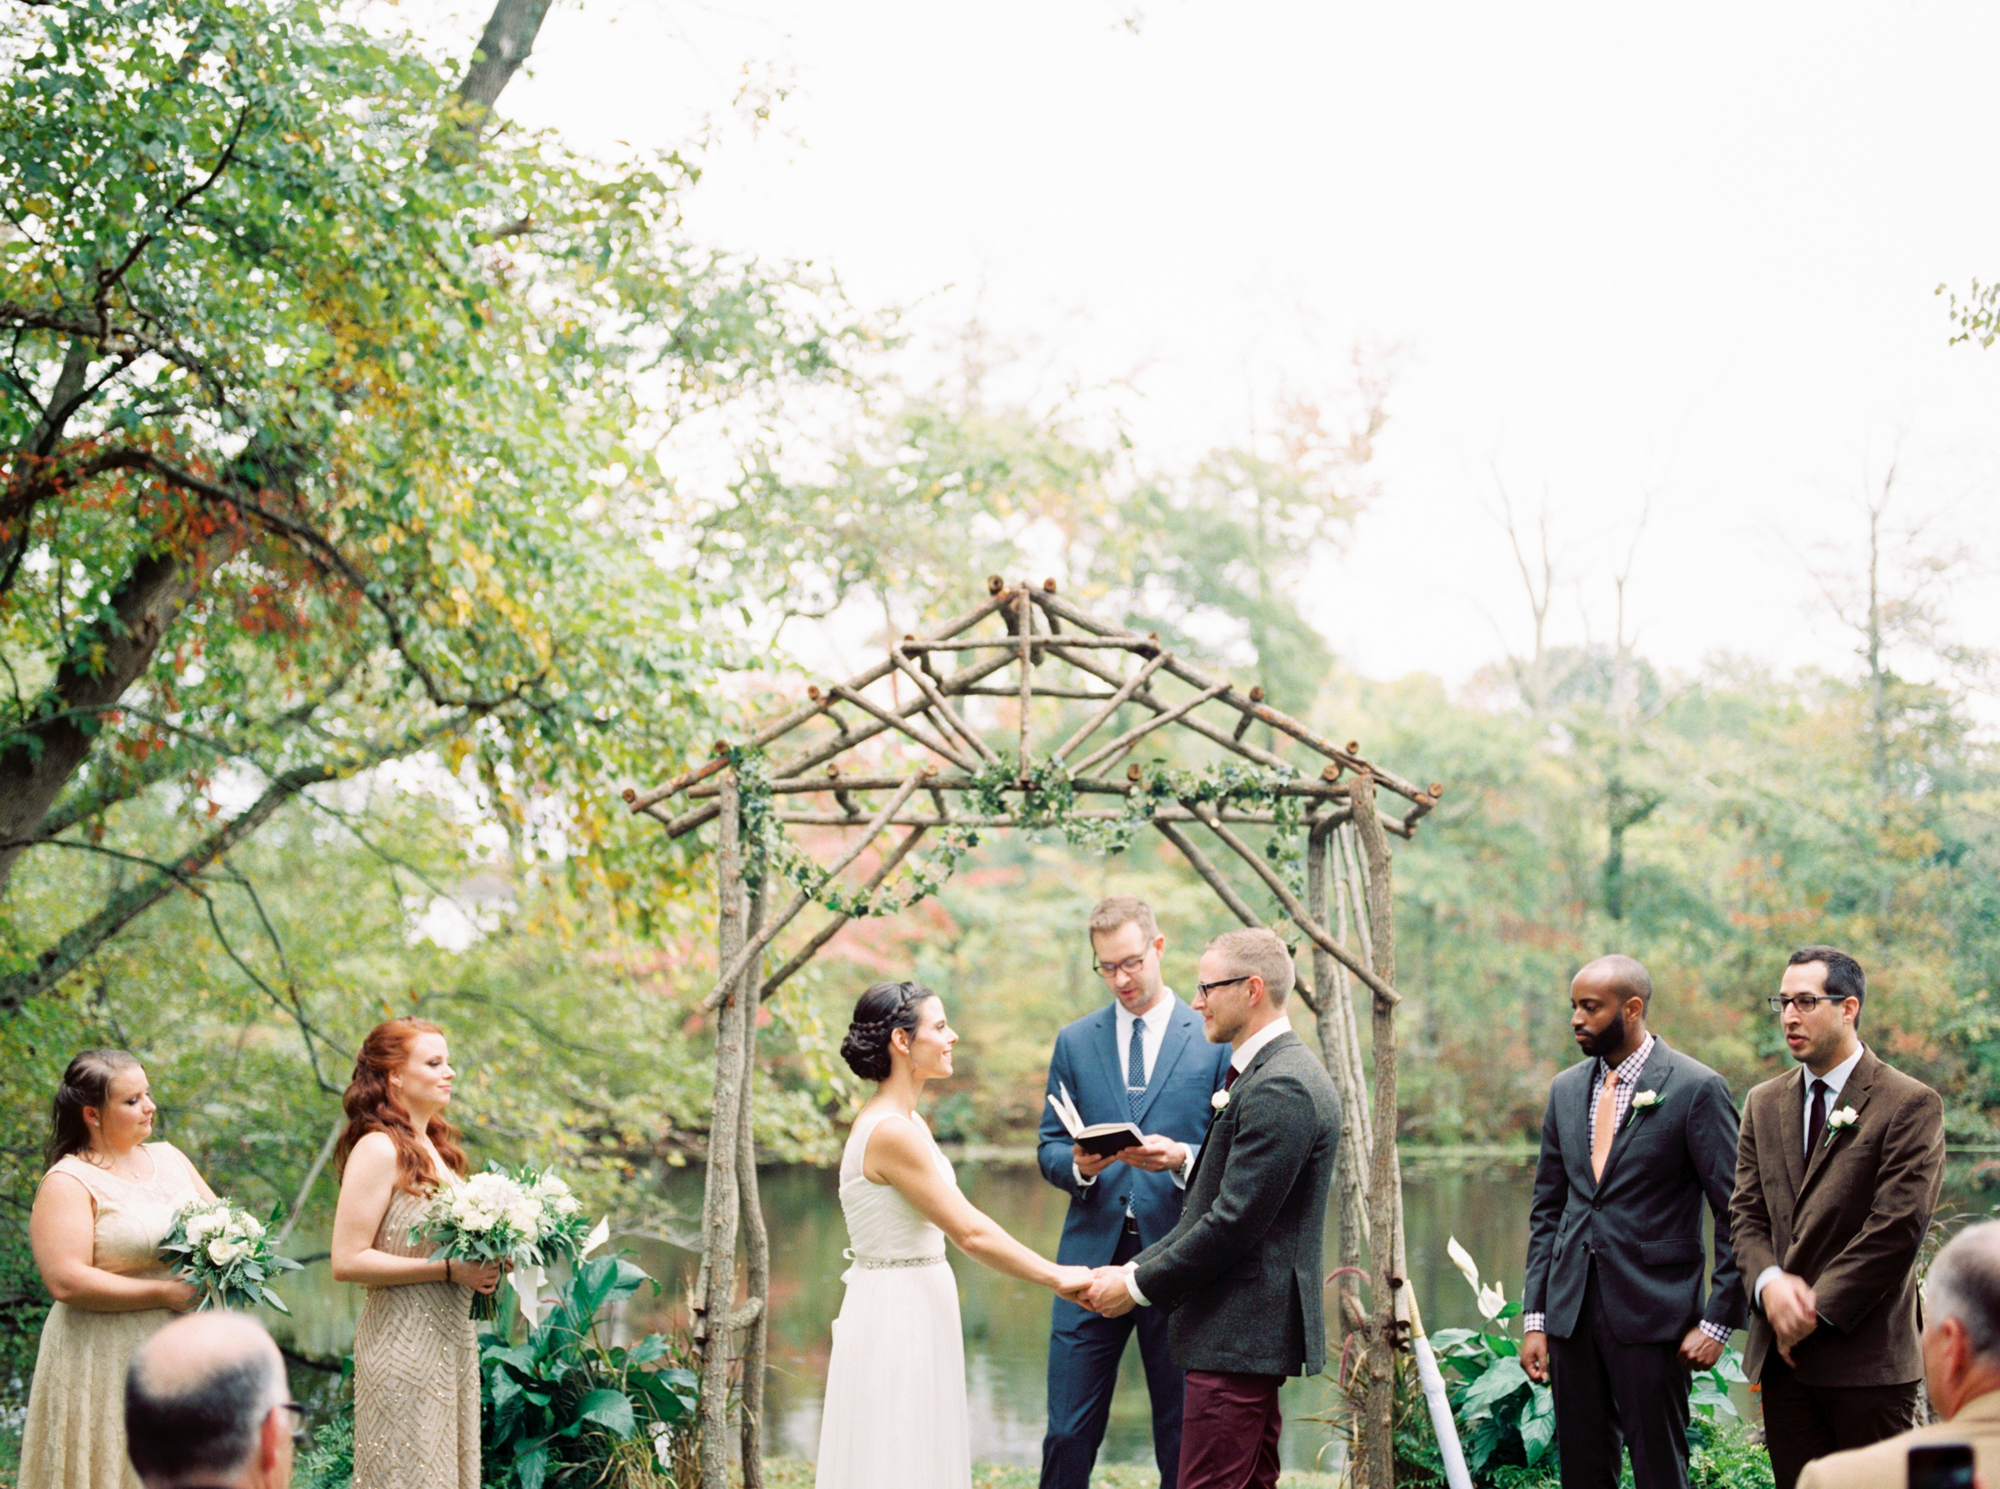 haley-richter-photography-new-jersey-backyard-wedding-207.jpg